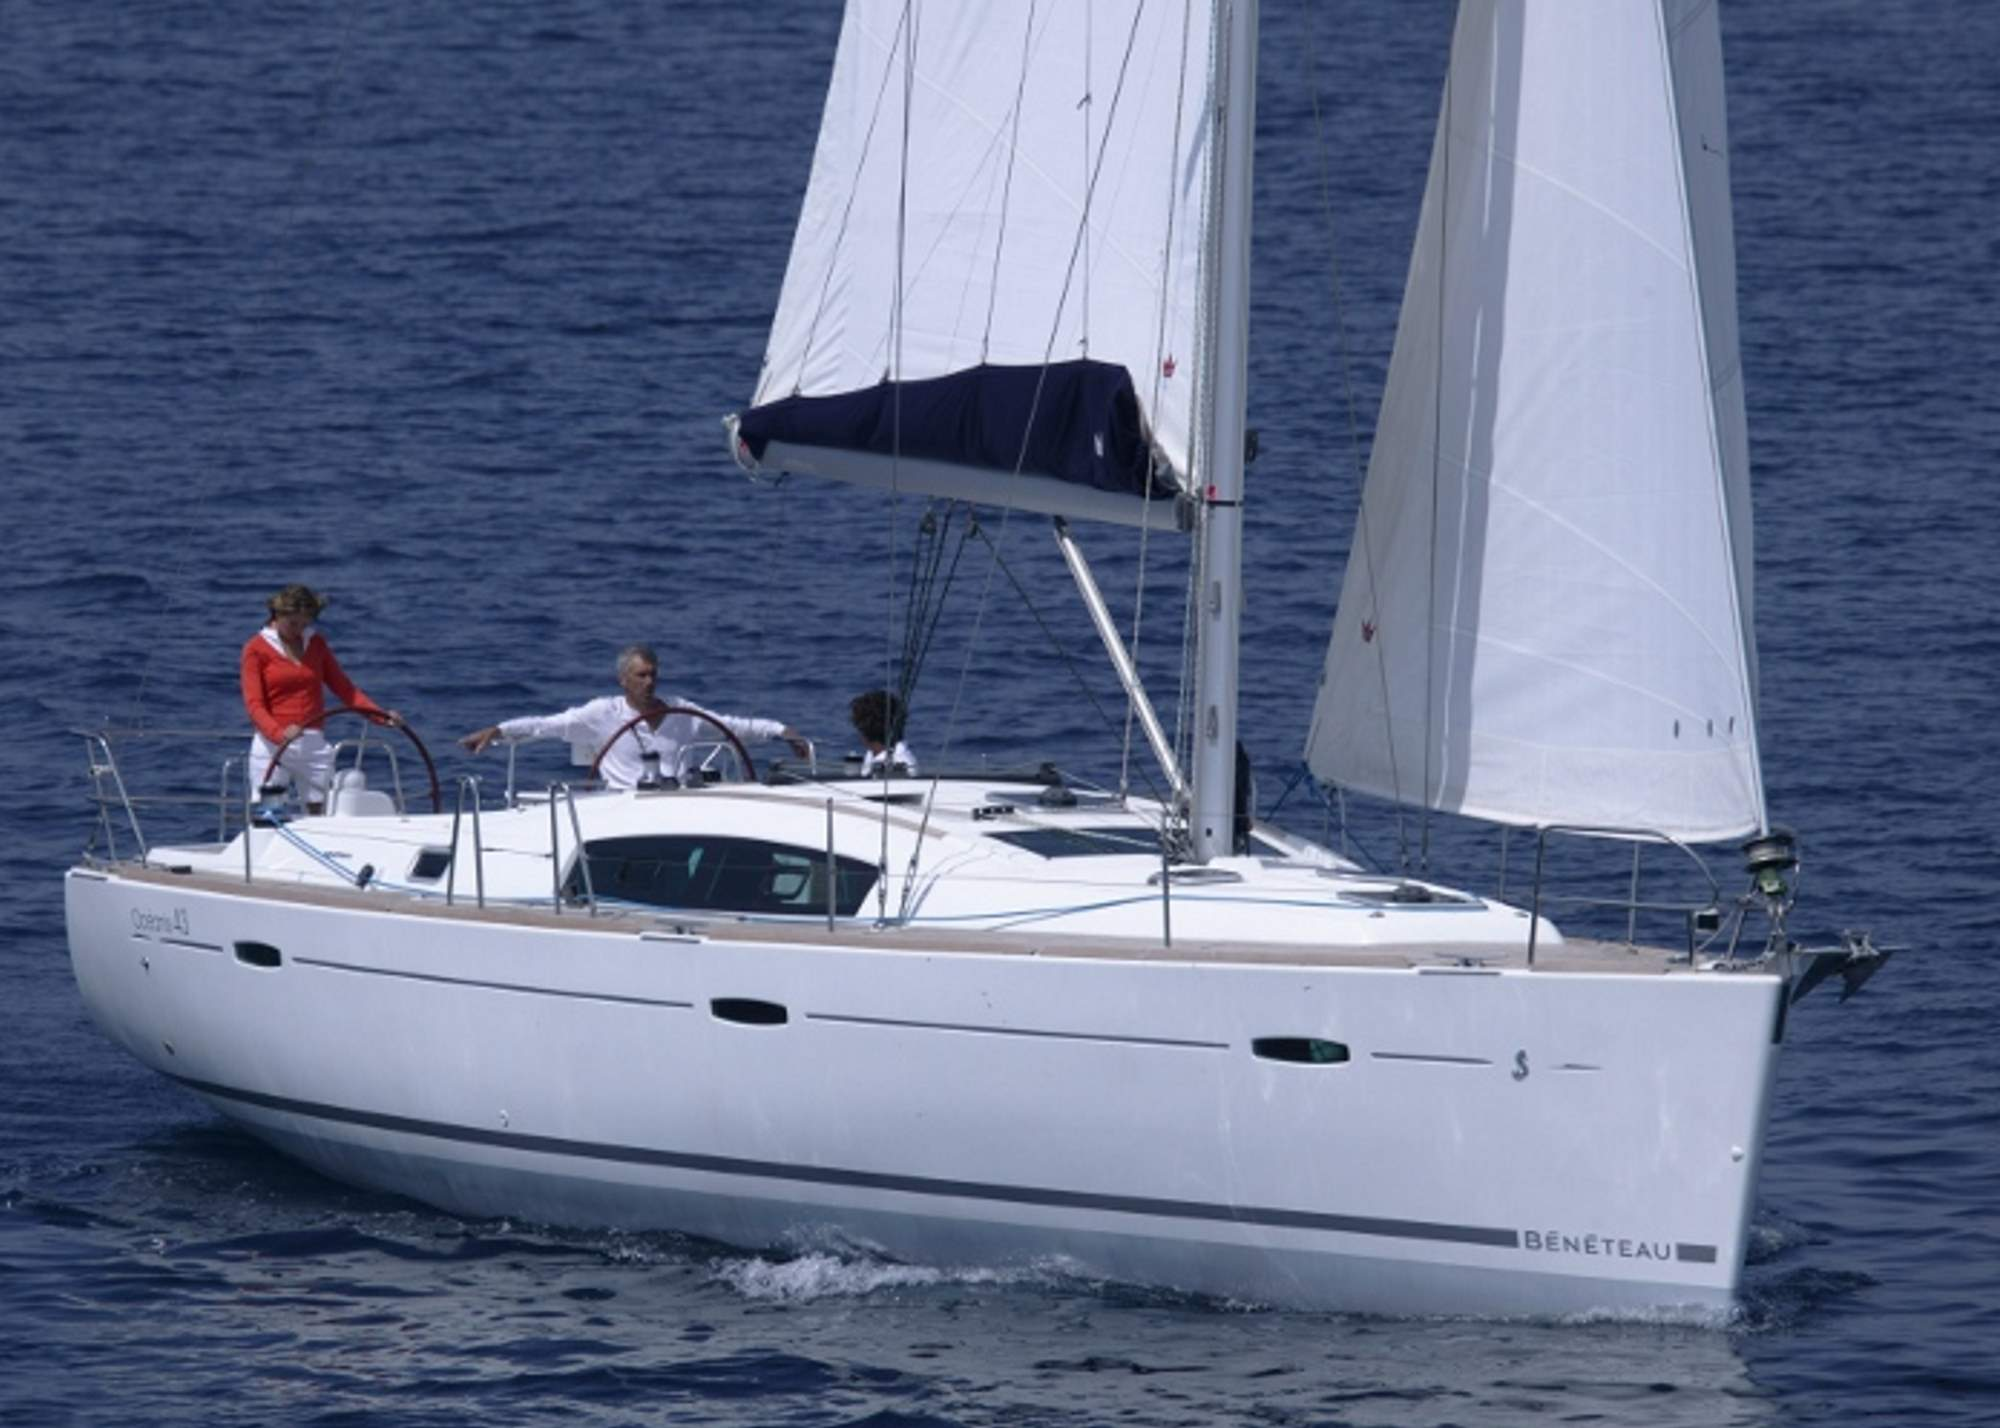 Oceanis 43 2011 Sailing in Greece yacht charter Ionian islands Odysseus